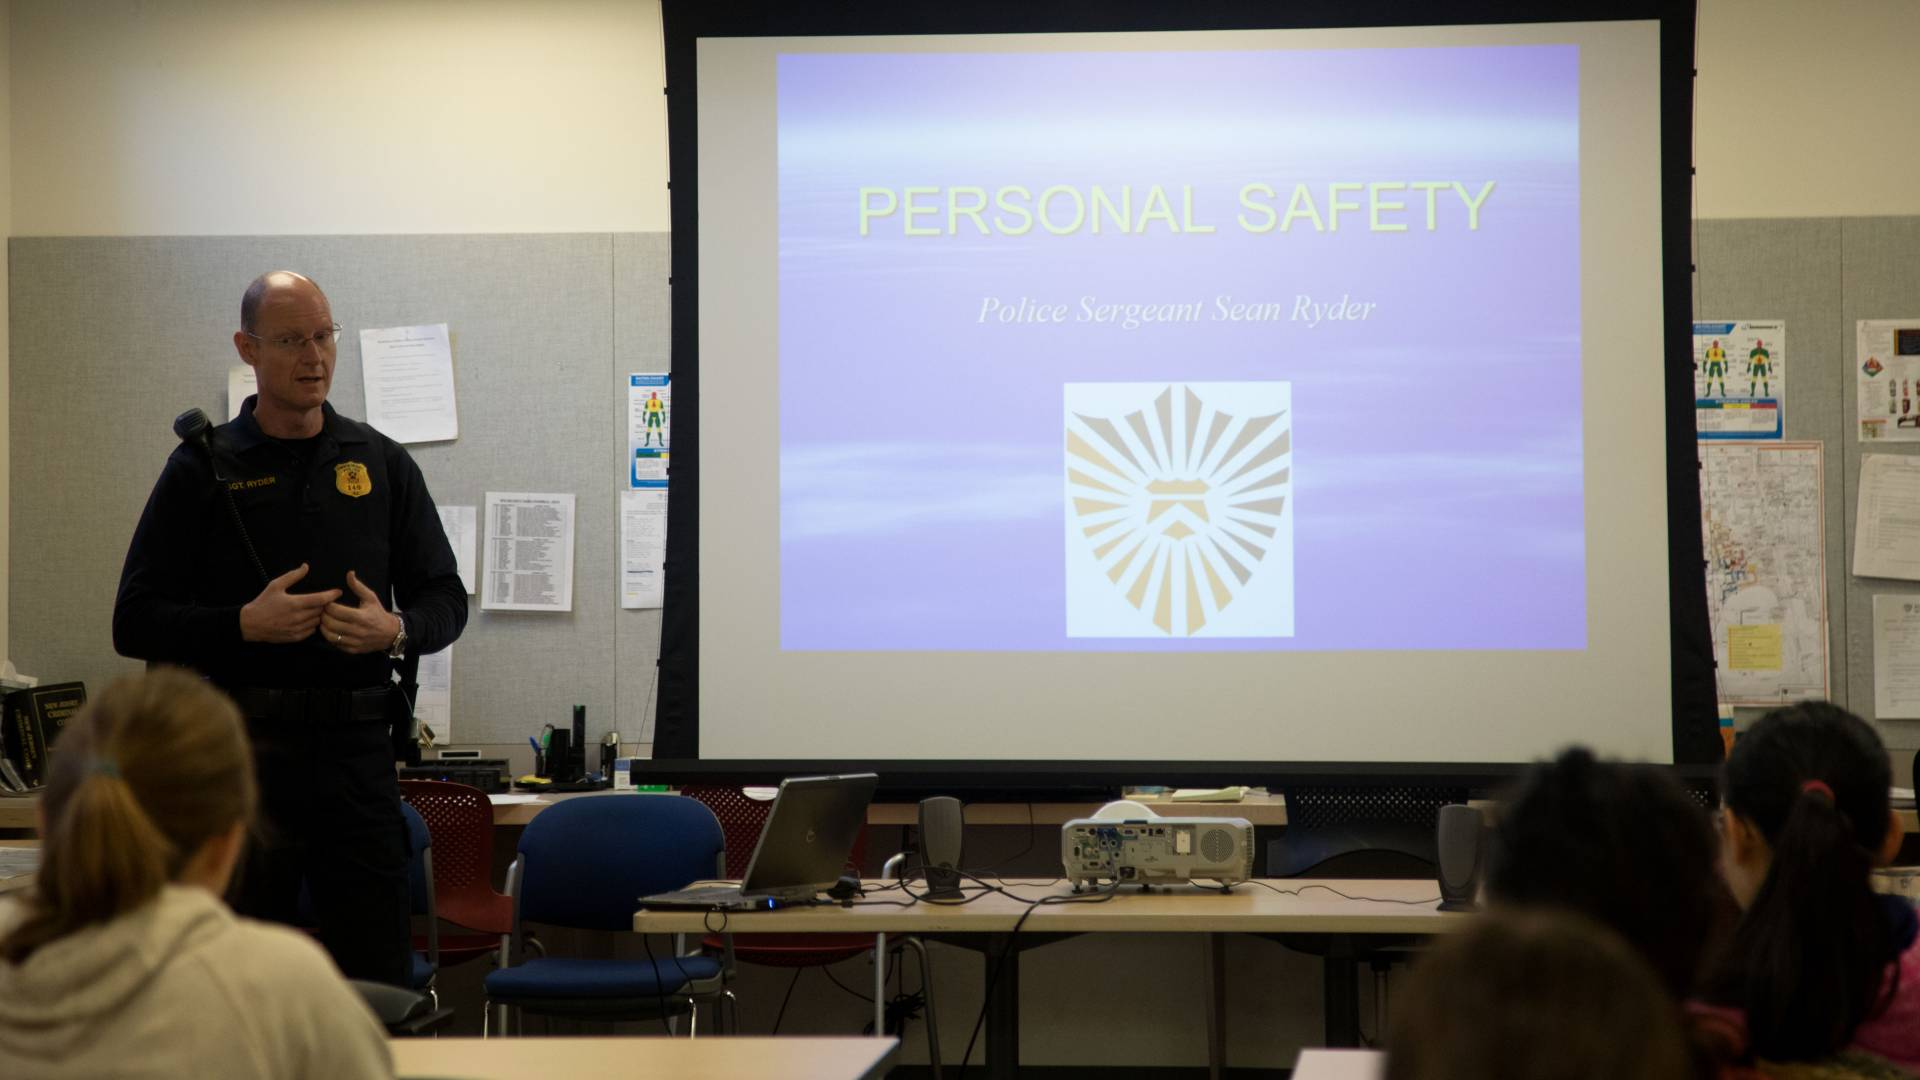 Public Safety officer Sean Ryder teaching safety course; Text on Slide: Personal Safety; Police Sergeant Sean Ryder